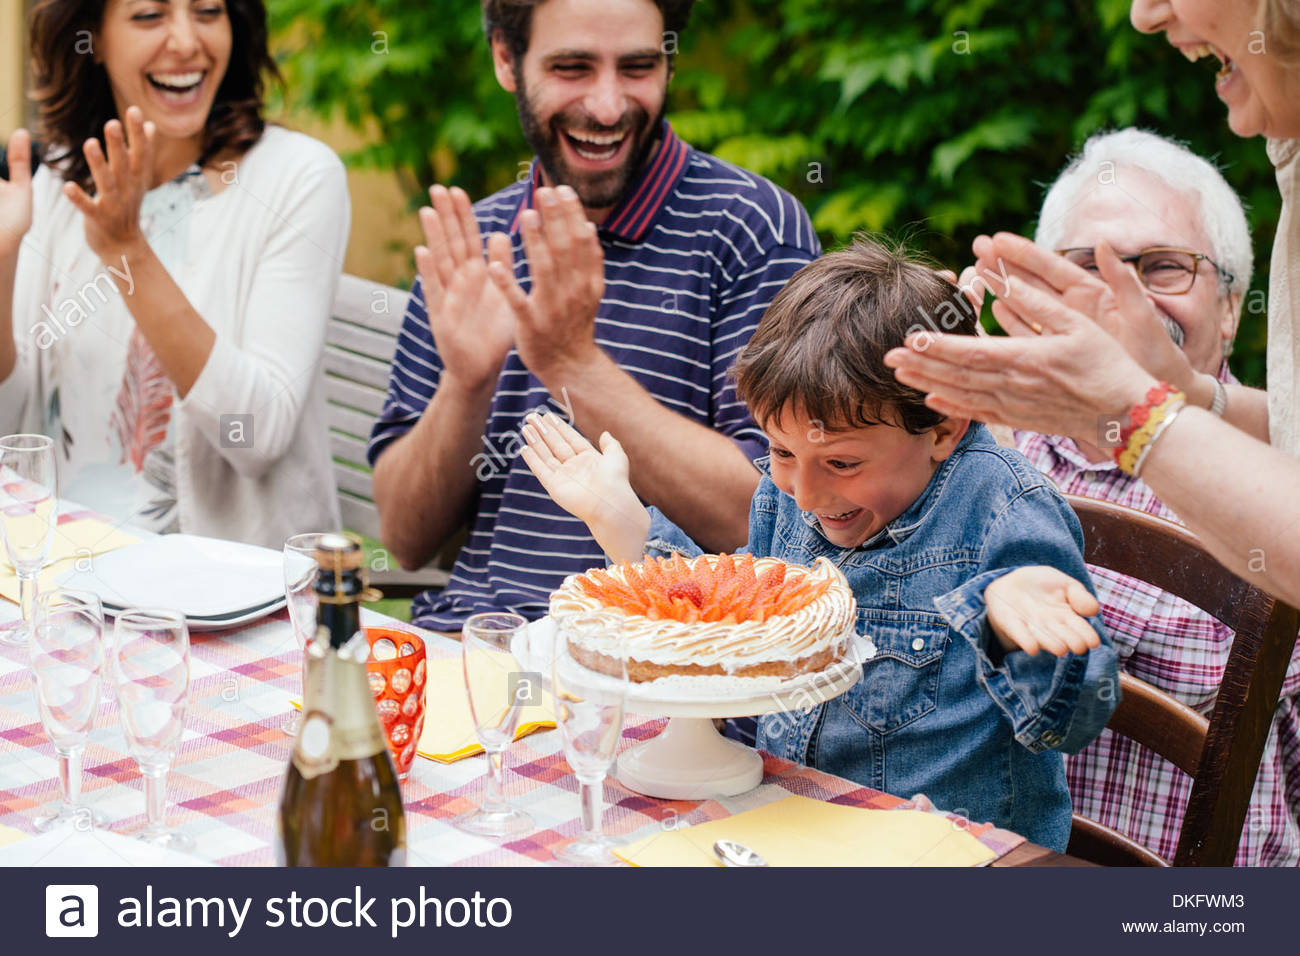 Boy being surprised with birthday cake Stock Photo